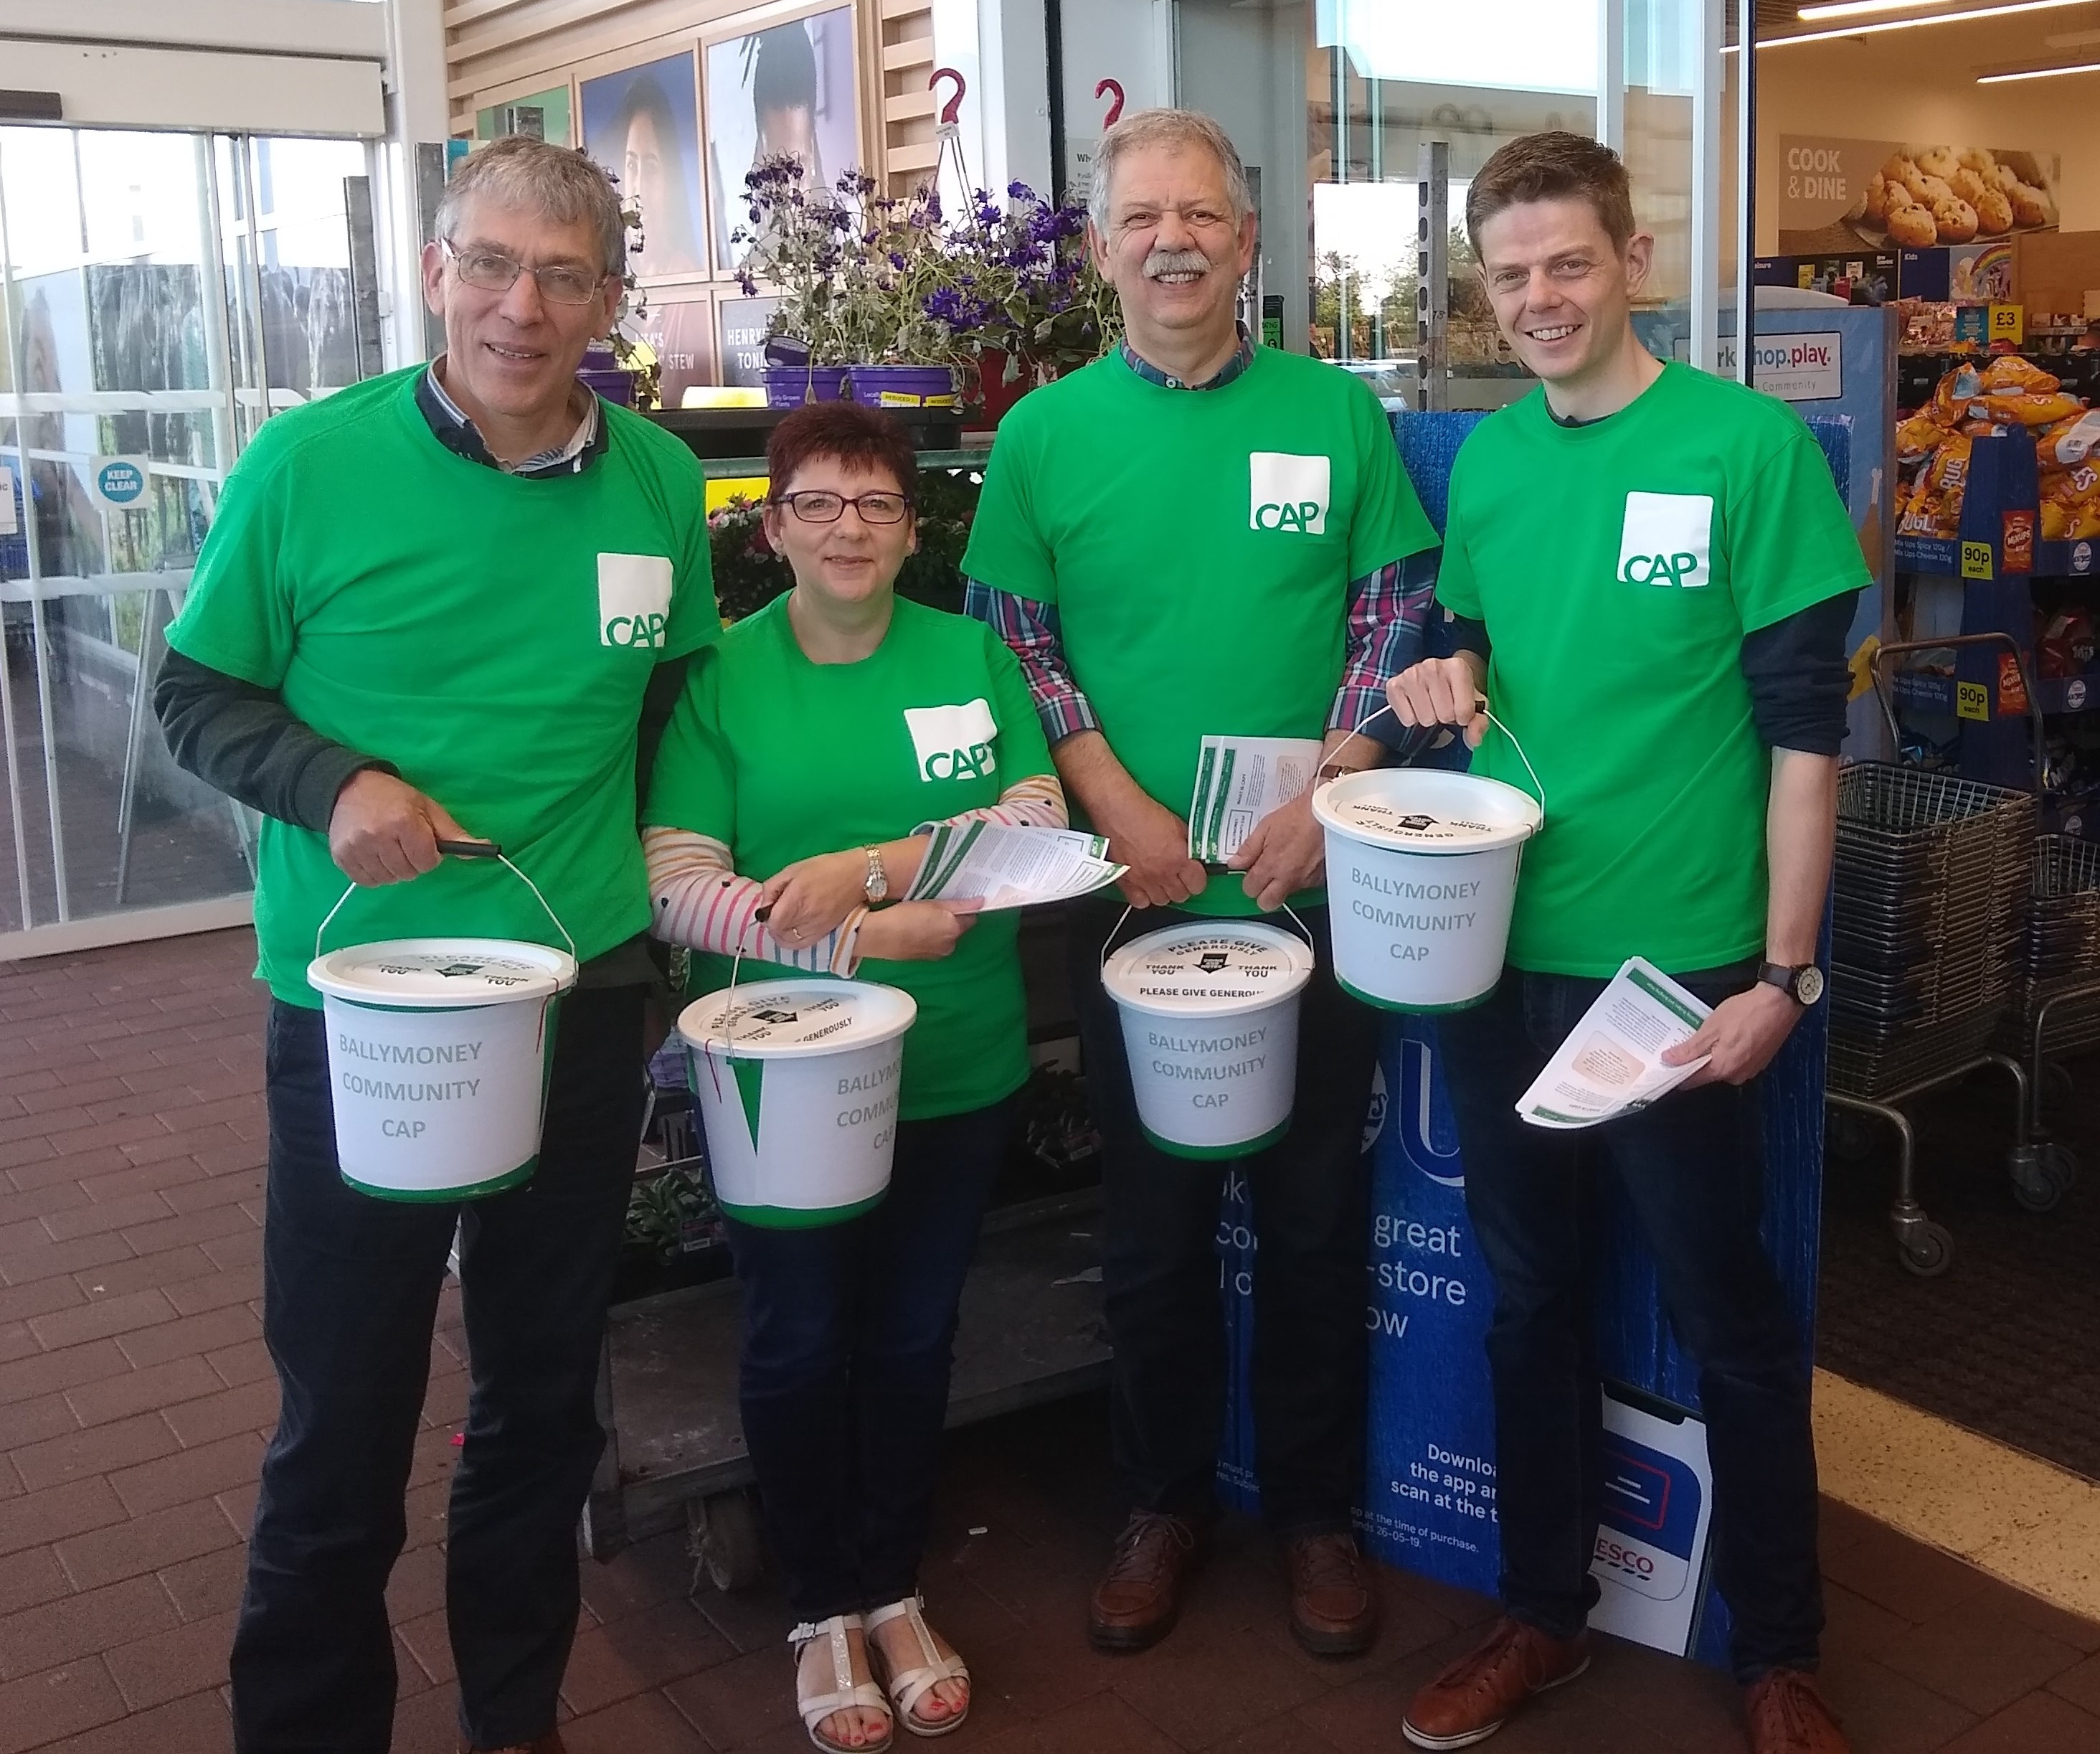 THOMAS TAGGART & SONS COLLECT FOR CAP BALLYMONEY